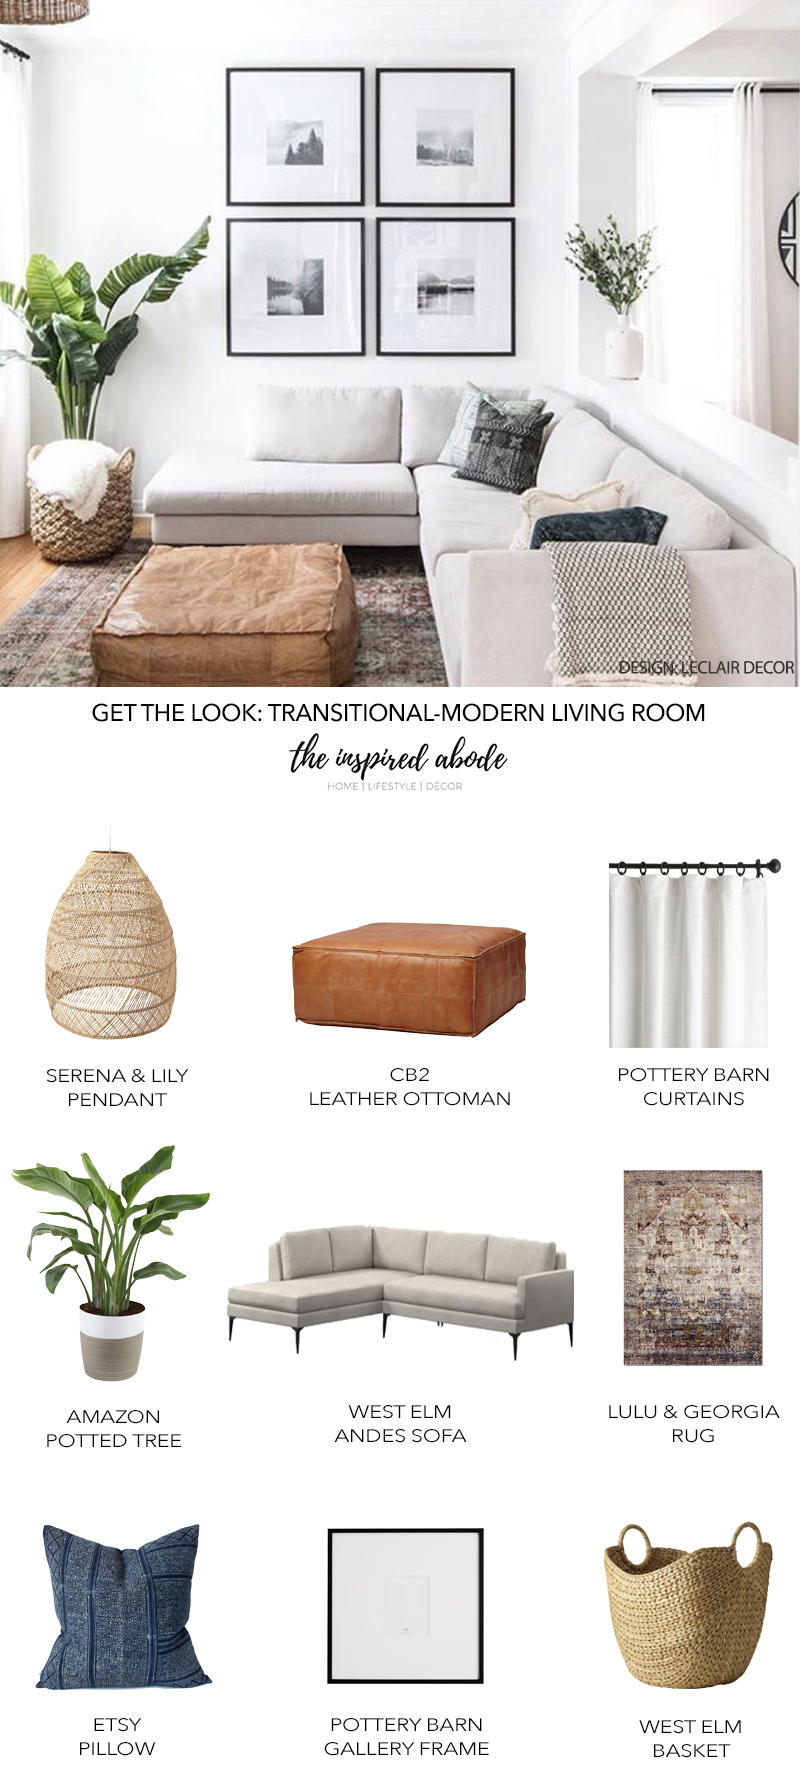 Get the Look: Transitional-Modern Living Room Design by Leclair Decor